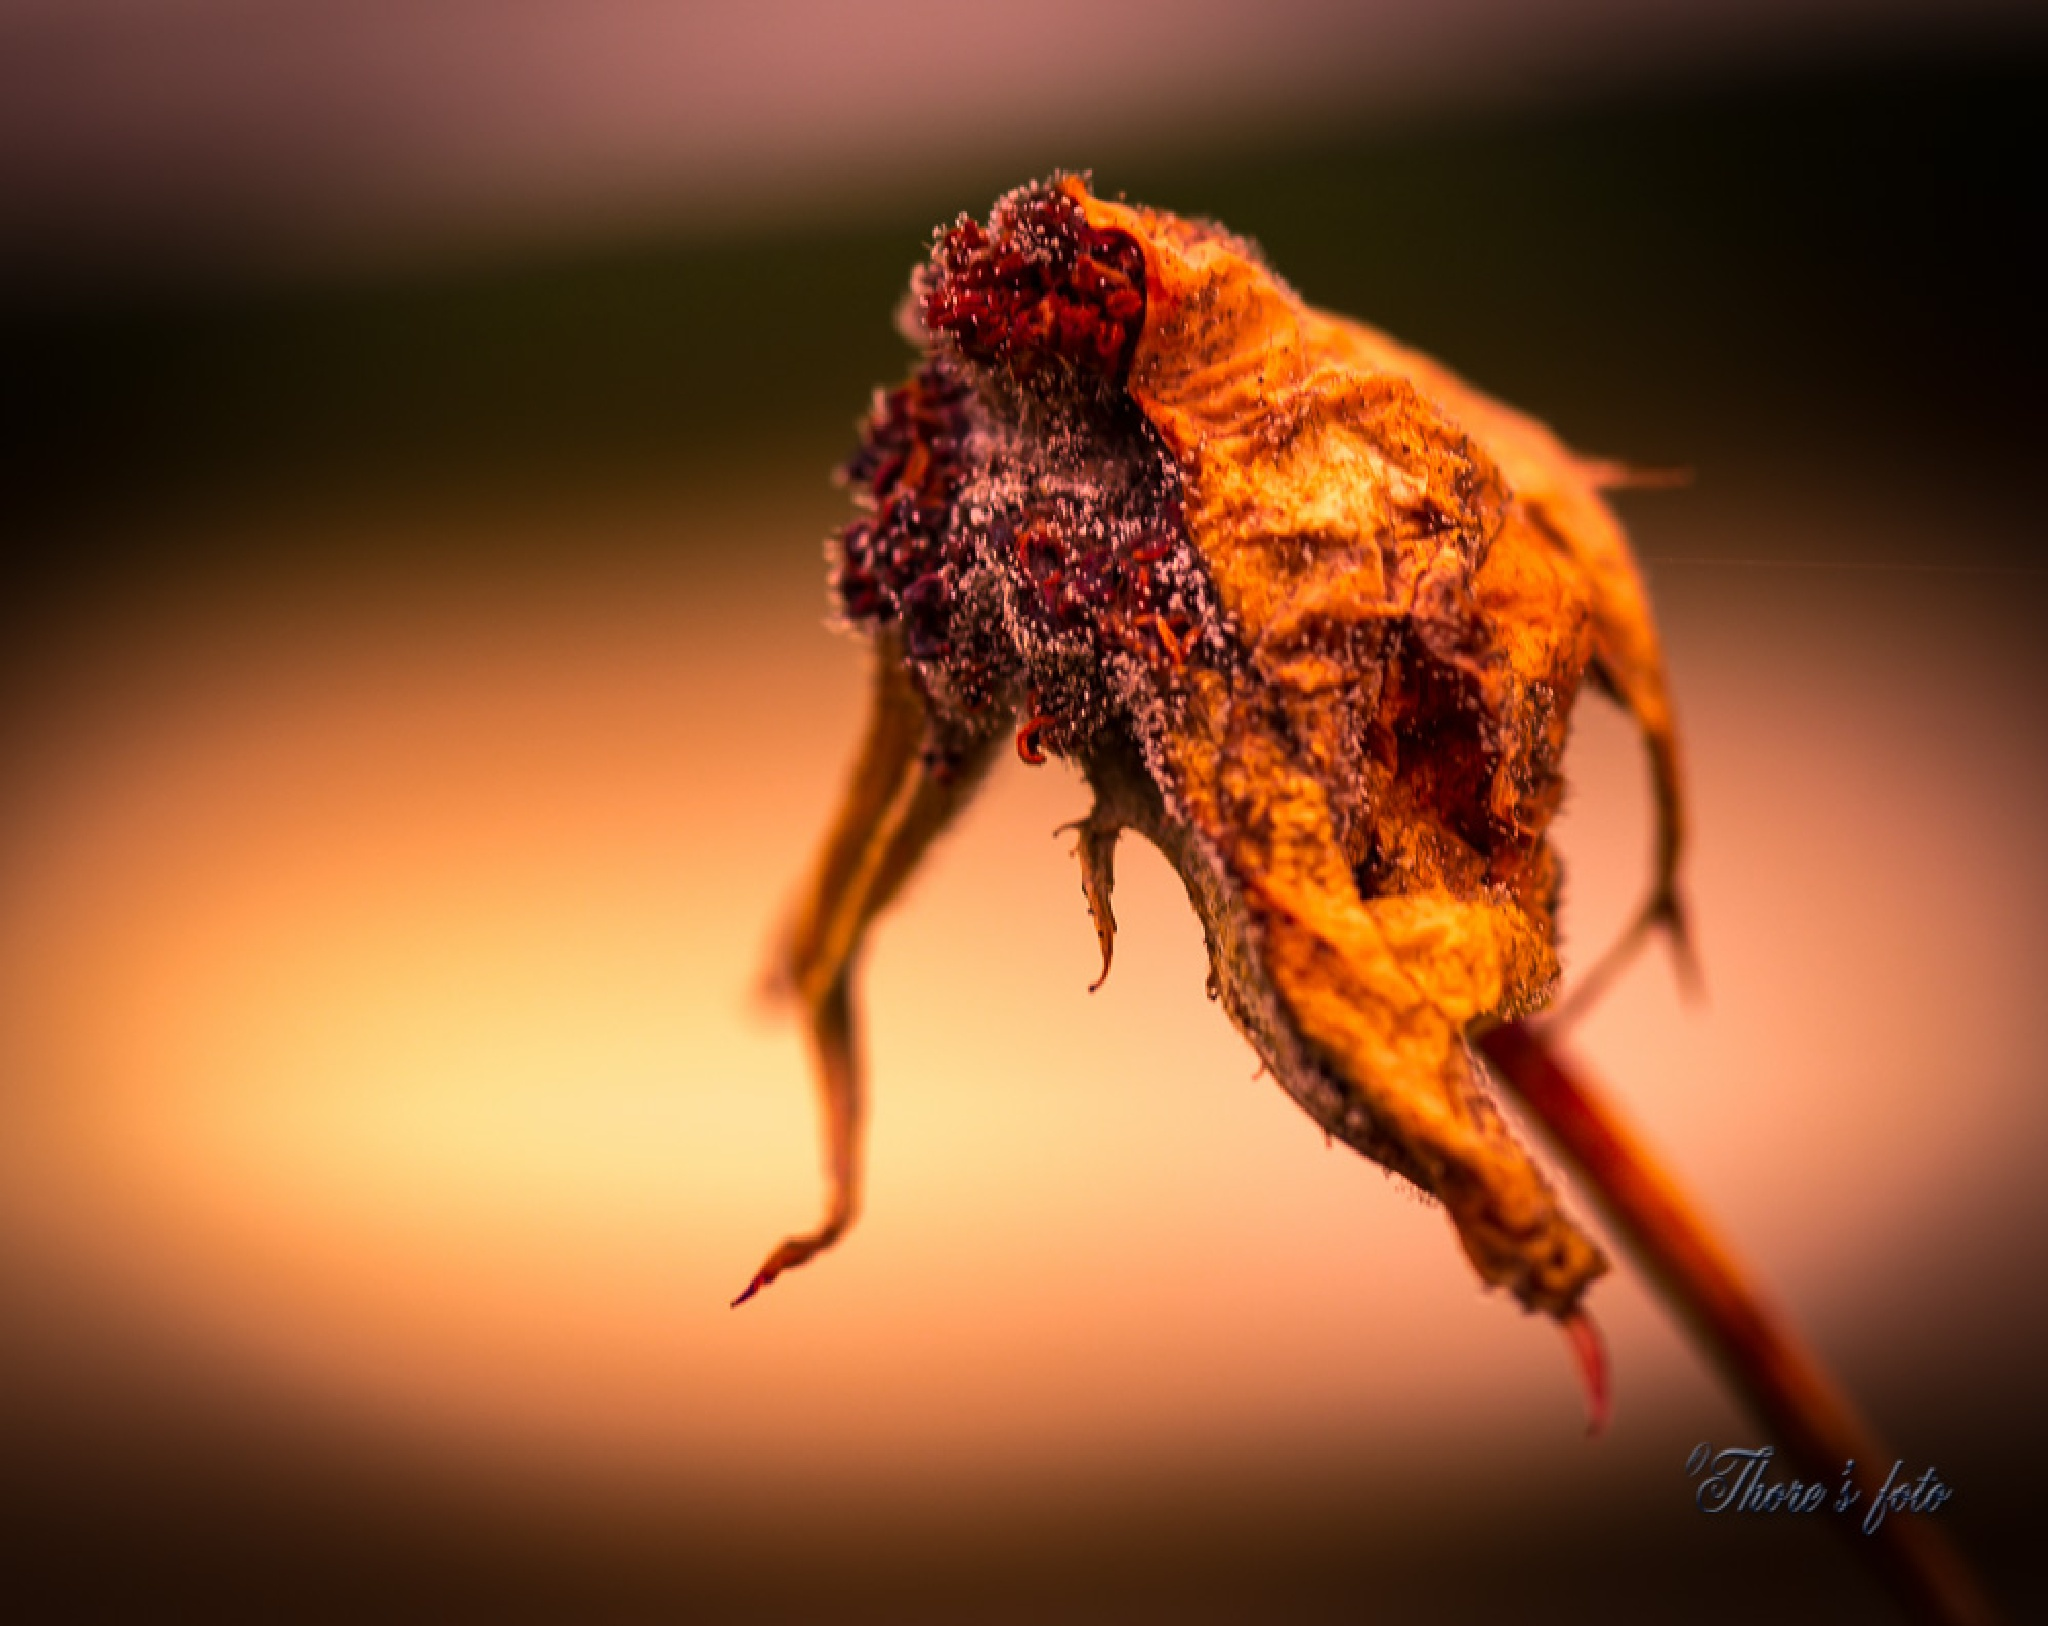 a dead rose by Thore's photo